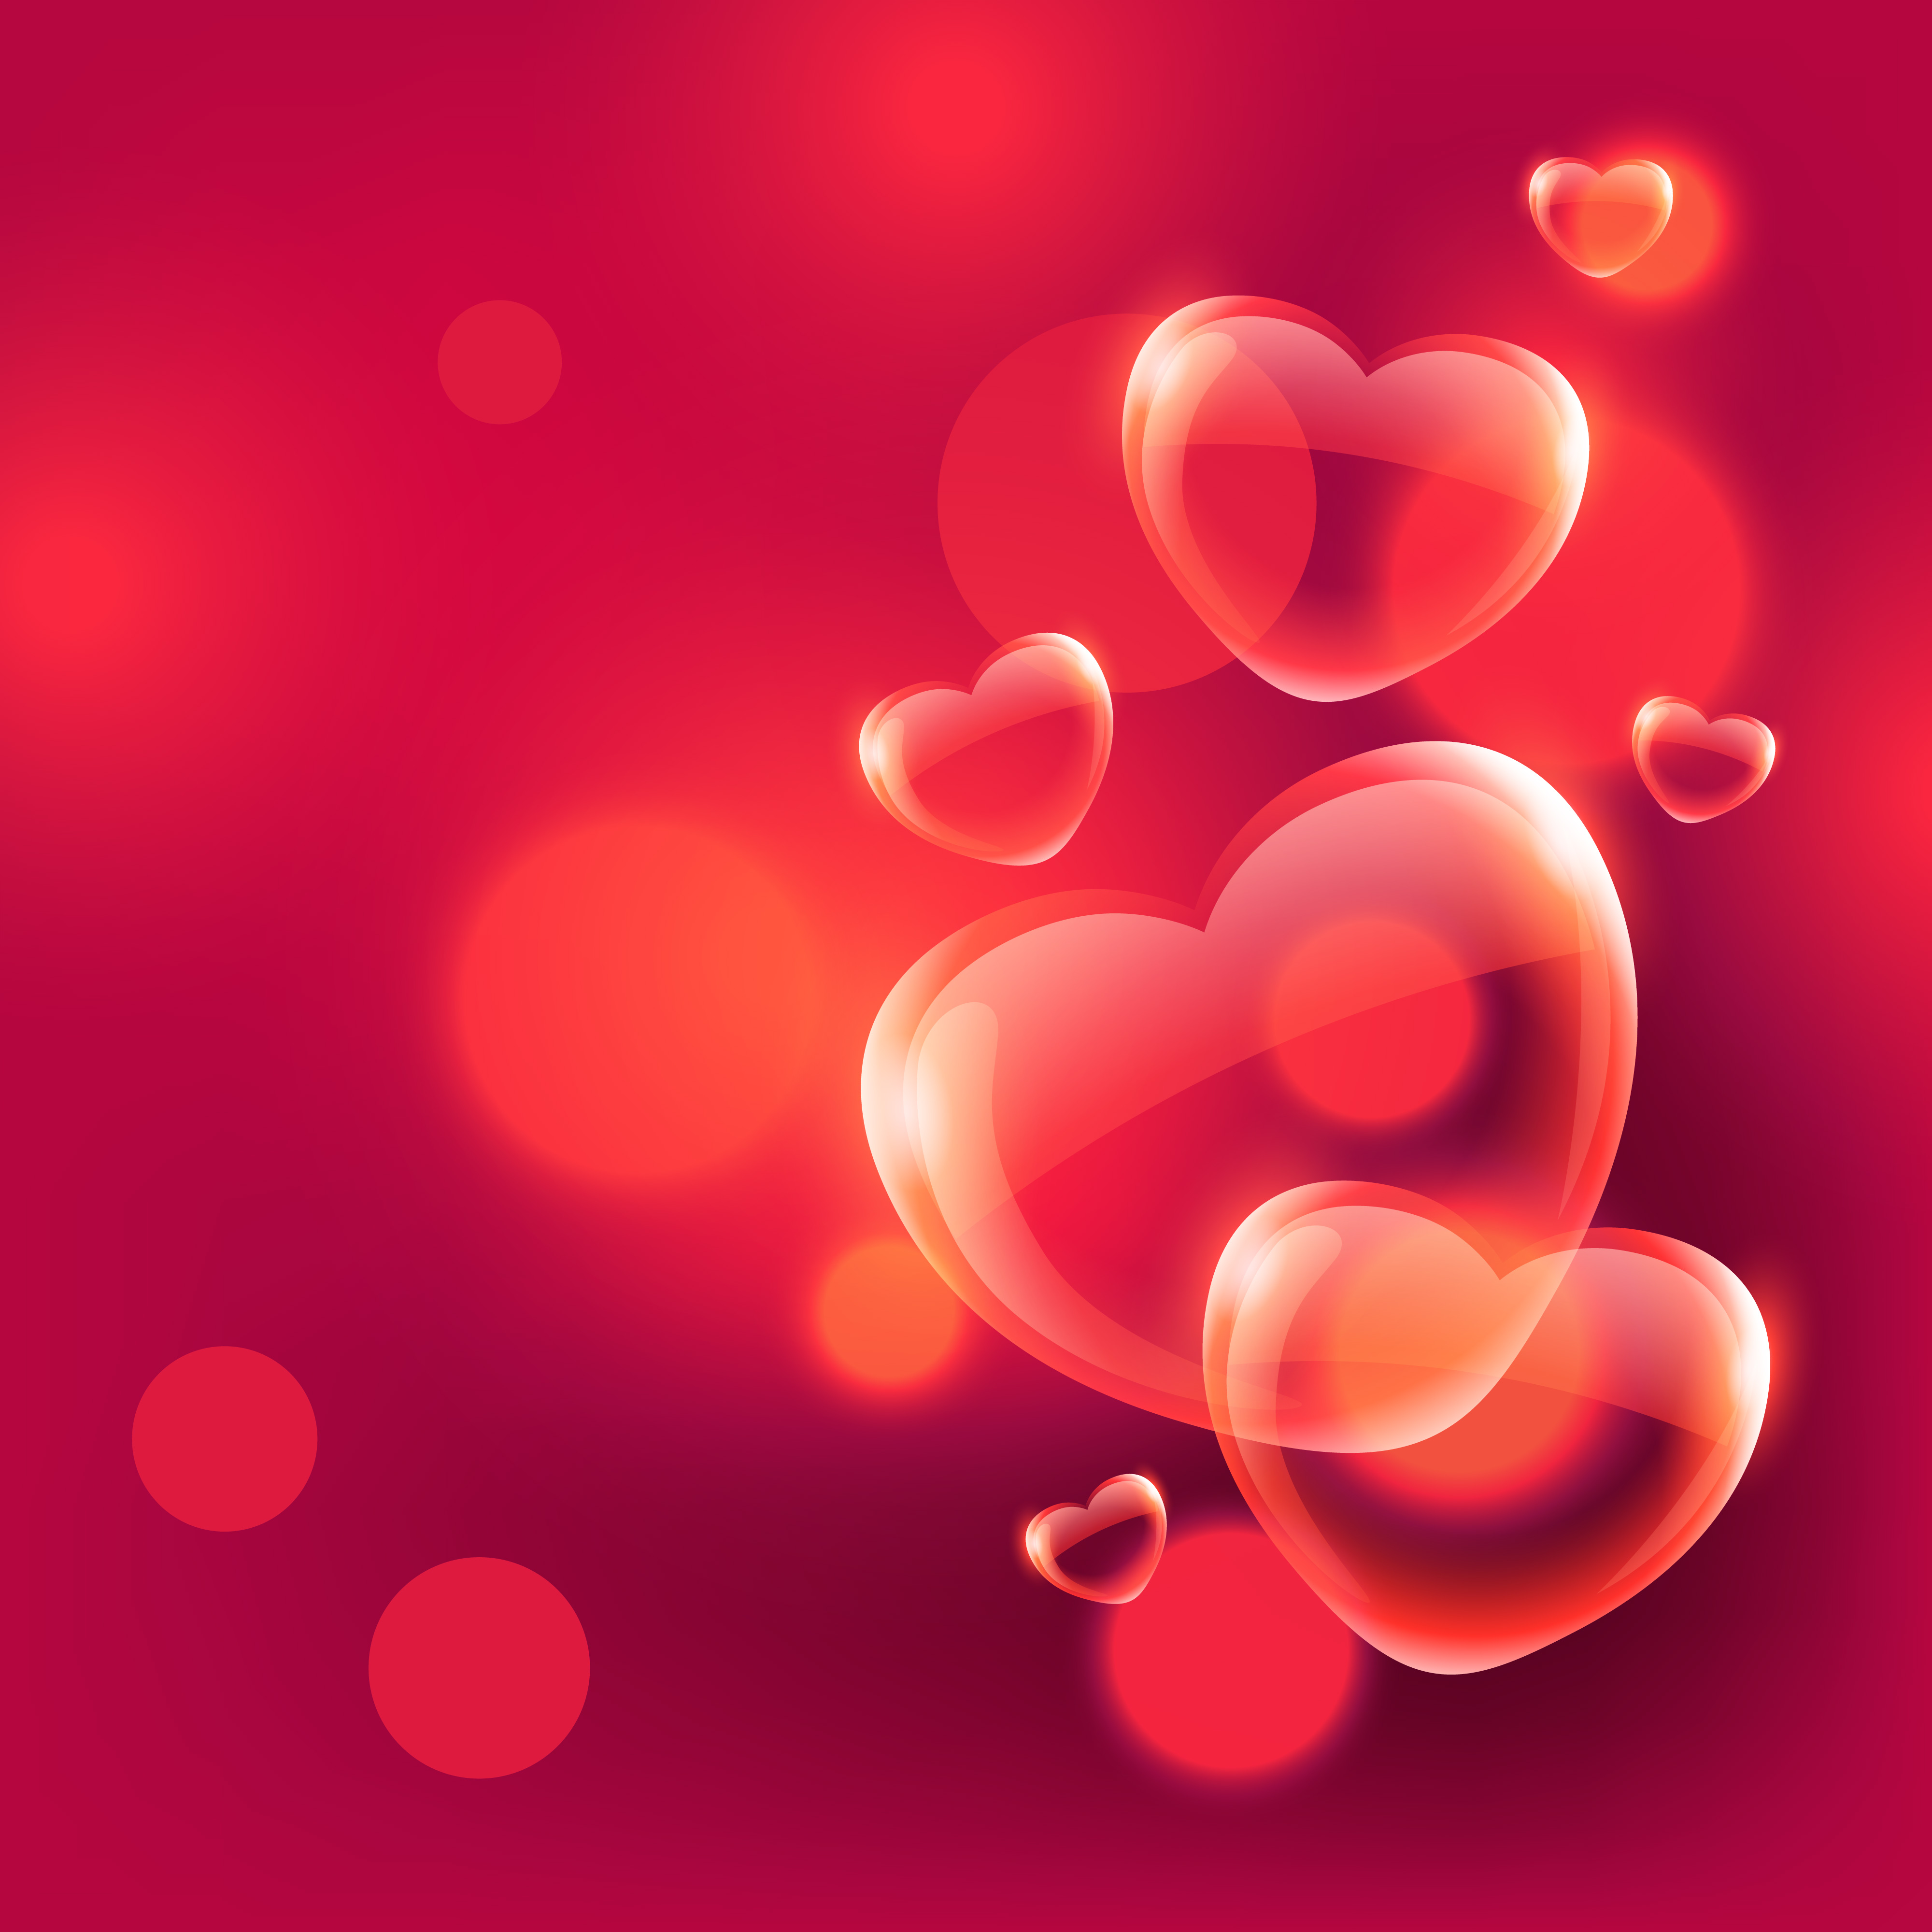 Pictures Of Beautiful Bedrooms And Living Rooms: Beautiful Love Hearts Bubbles Floating In Air On Red Bokeh